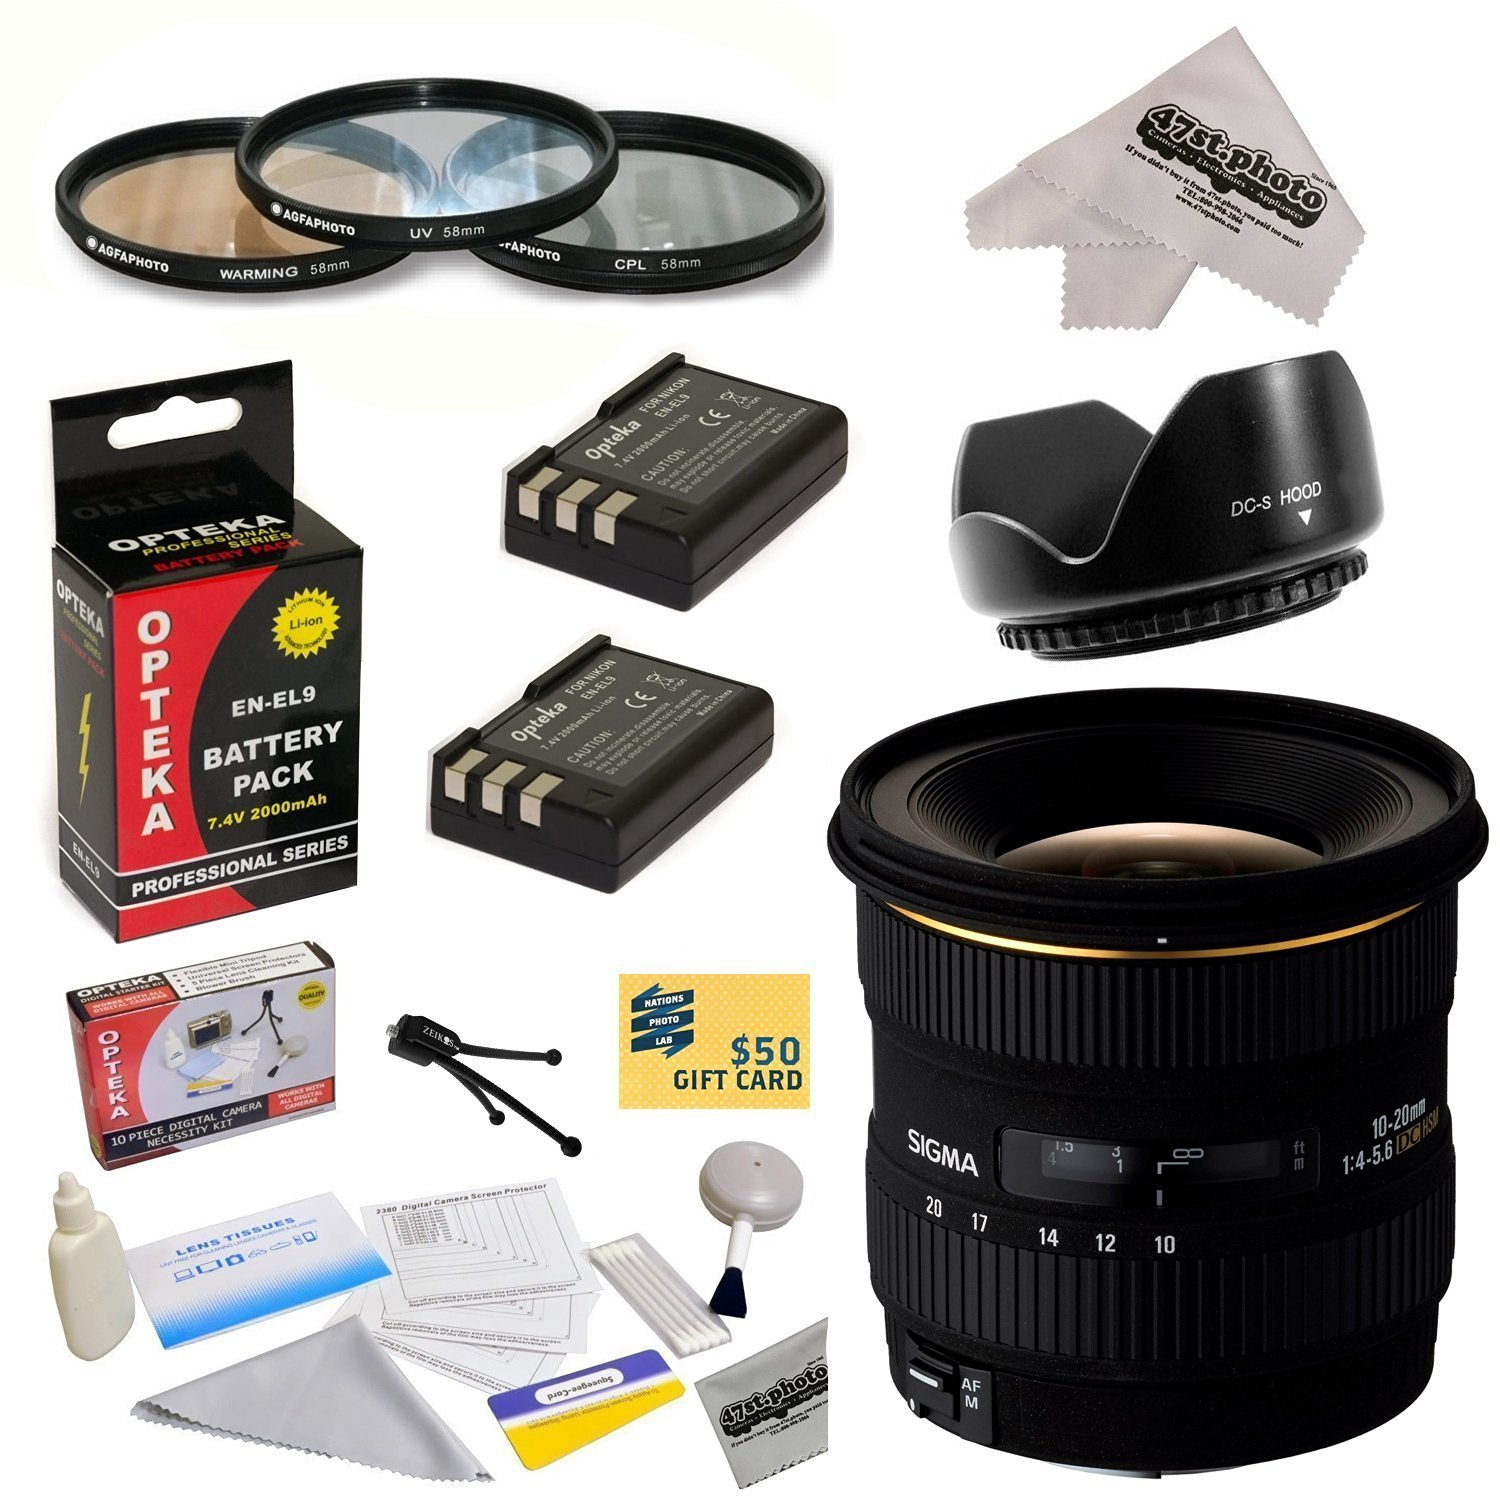 Sigma 10-20mm f/4-5.6 EX DC HSM Autofocus Lens For the Nikon D40 D40x D60 D3000 D5000 - Includes 77MM 3 Piece Pro Filter Kit (UV, CPL, FLD) + Flower Lens Hood + 2 Replacement Nikon EN-EL9 Batteries 2000MAH Each 4000MAh in Total + Deluxe Lens Cleaning Kit + LCD Screen Protectors + Mini Tripod +